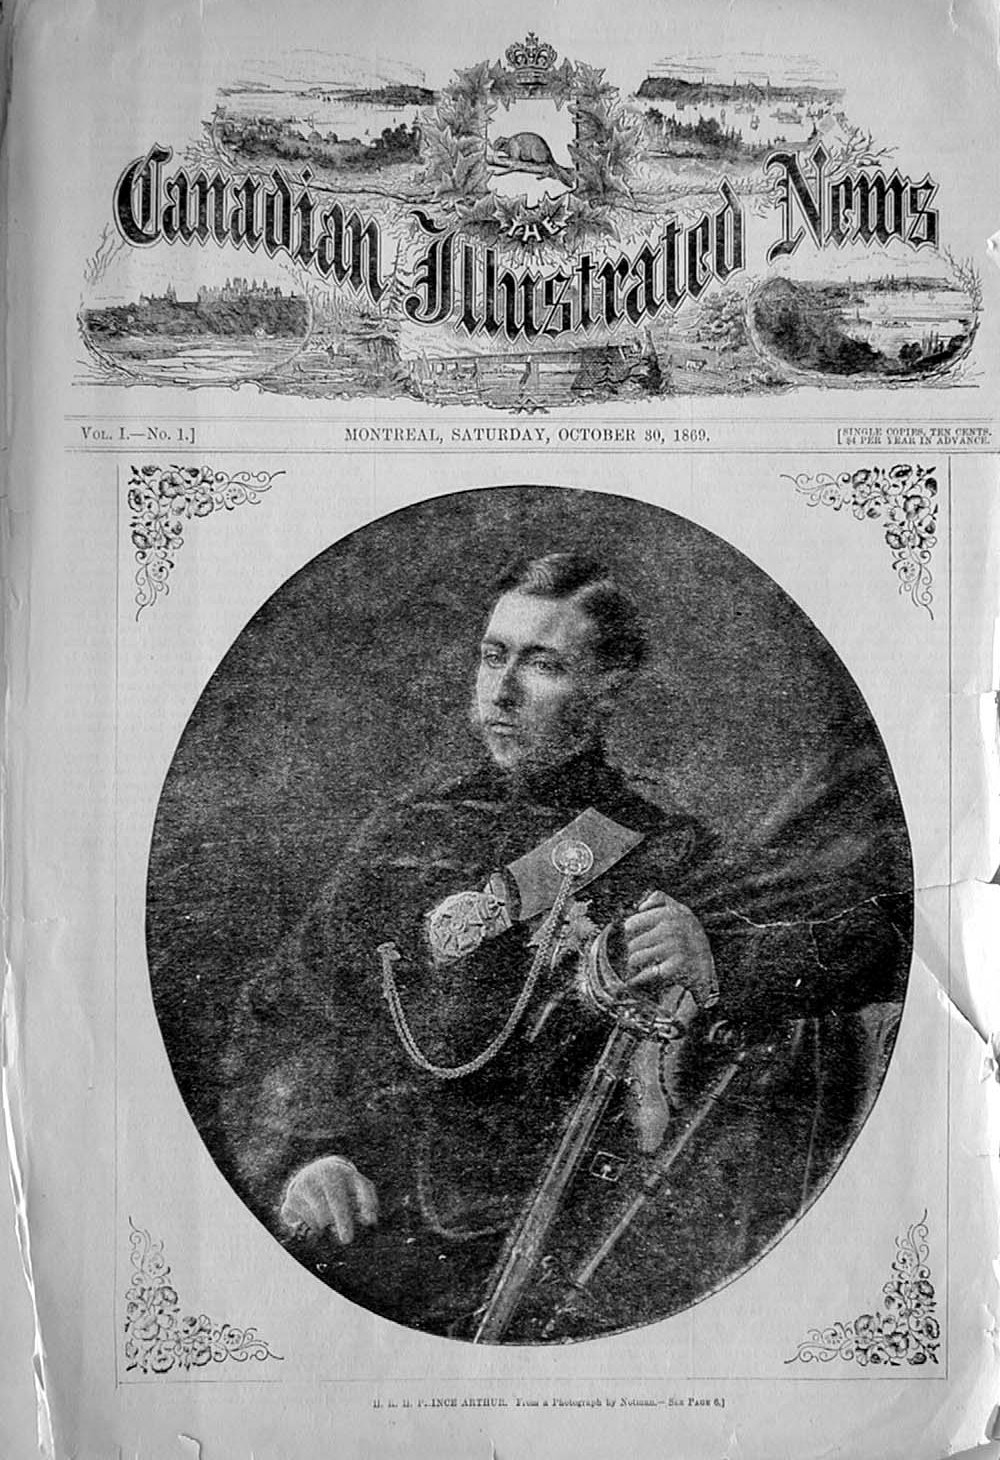 First issue of the Canadian Illustrated News